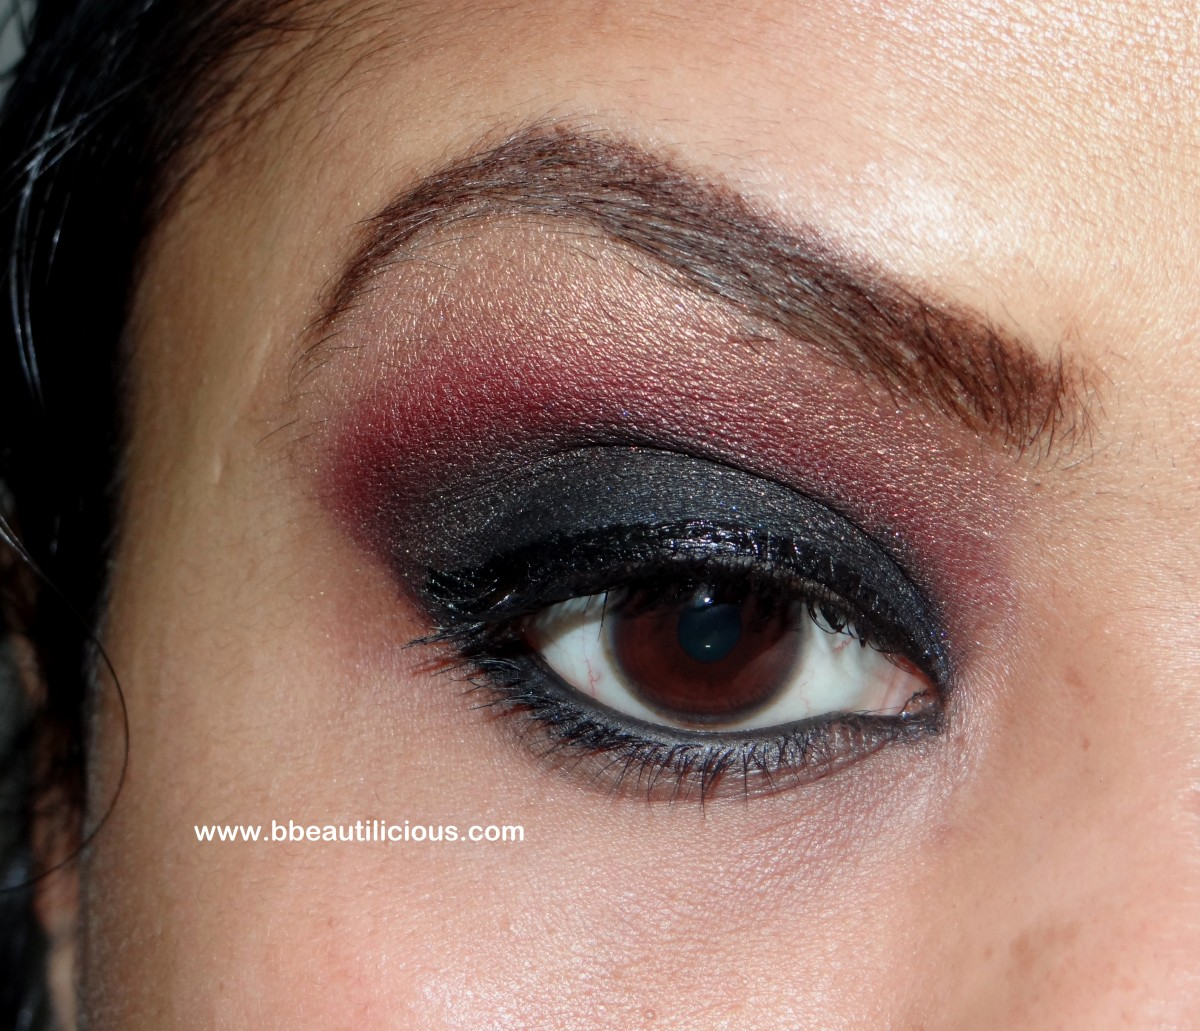 Inglot AMC 61 eyeshadow swatch and review